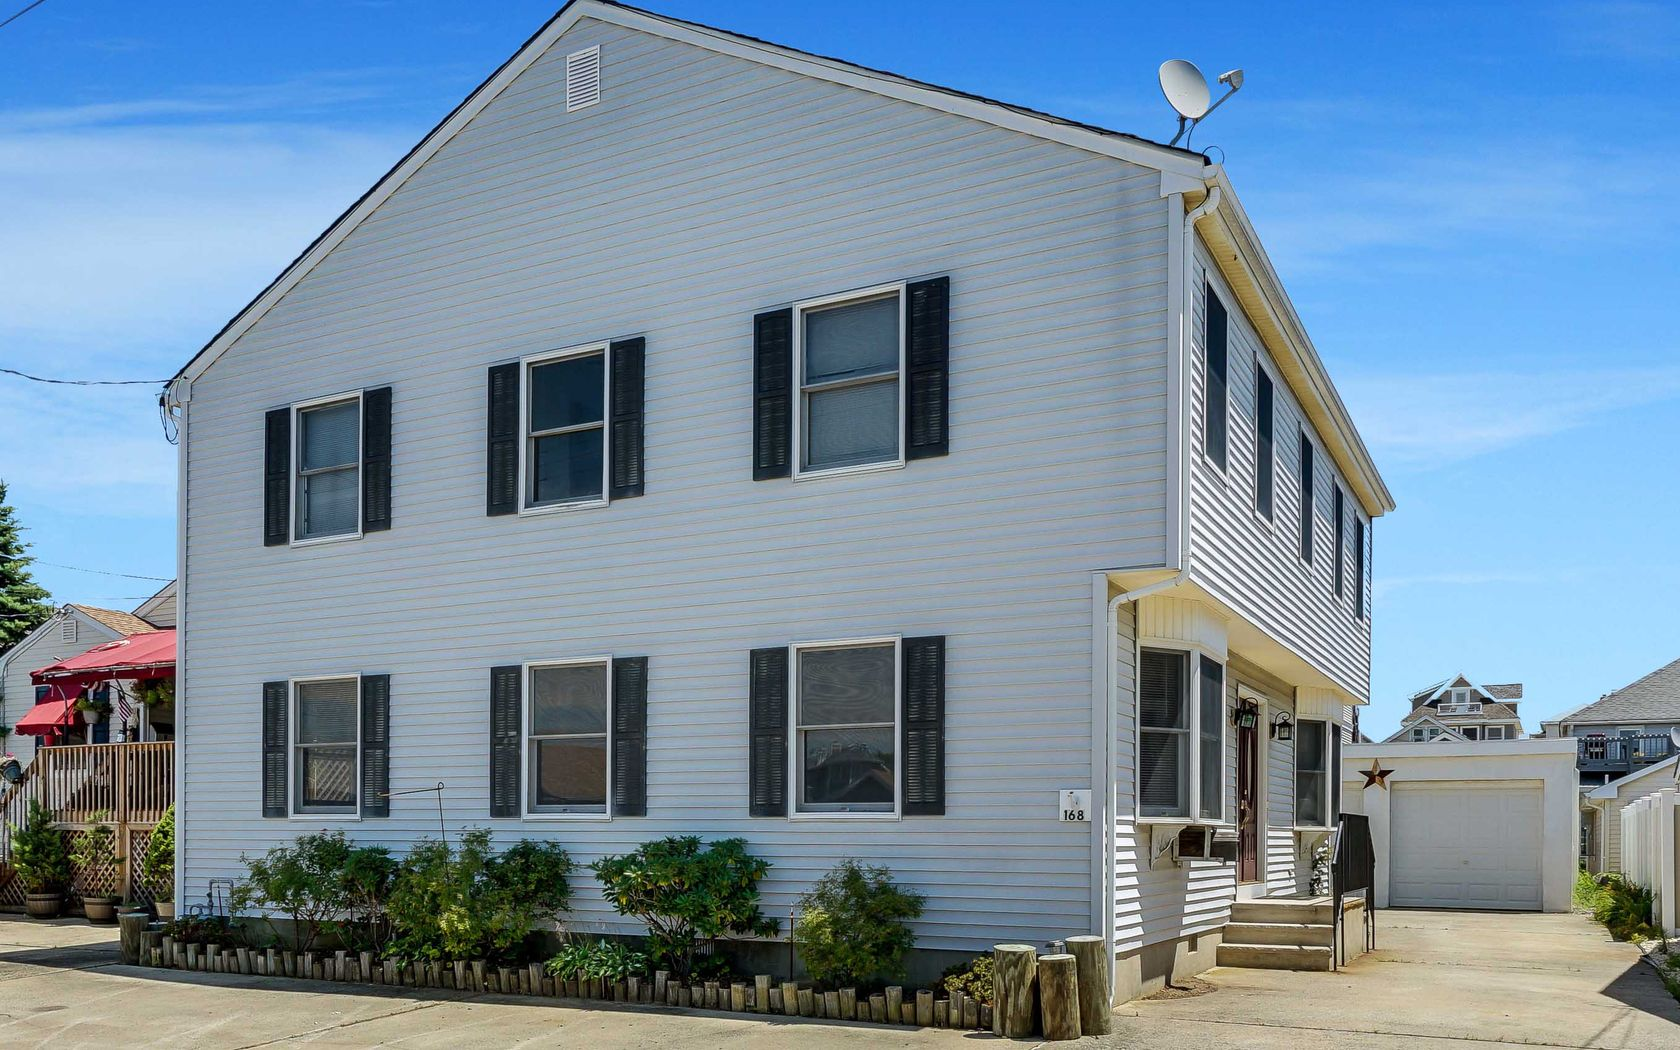 Single Family Home for Sale at Fantastic Beach Get Away 168 2nd Avenue Manasquan, New Jersey 08736 United States